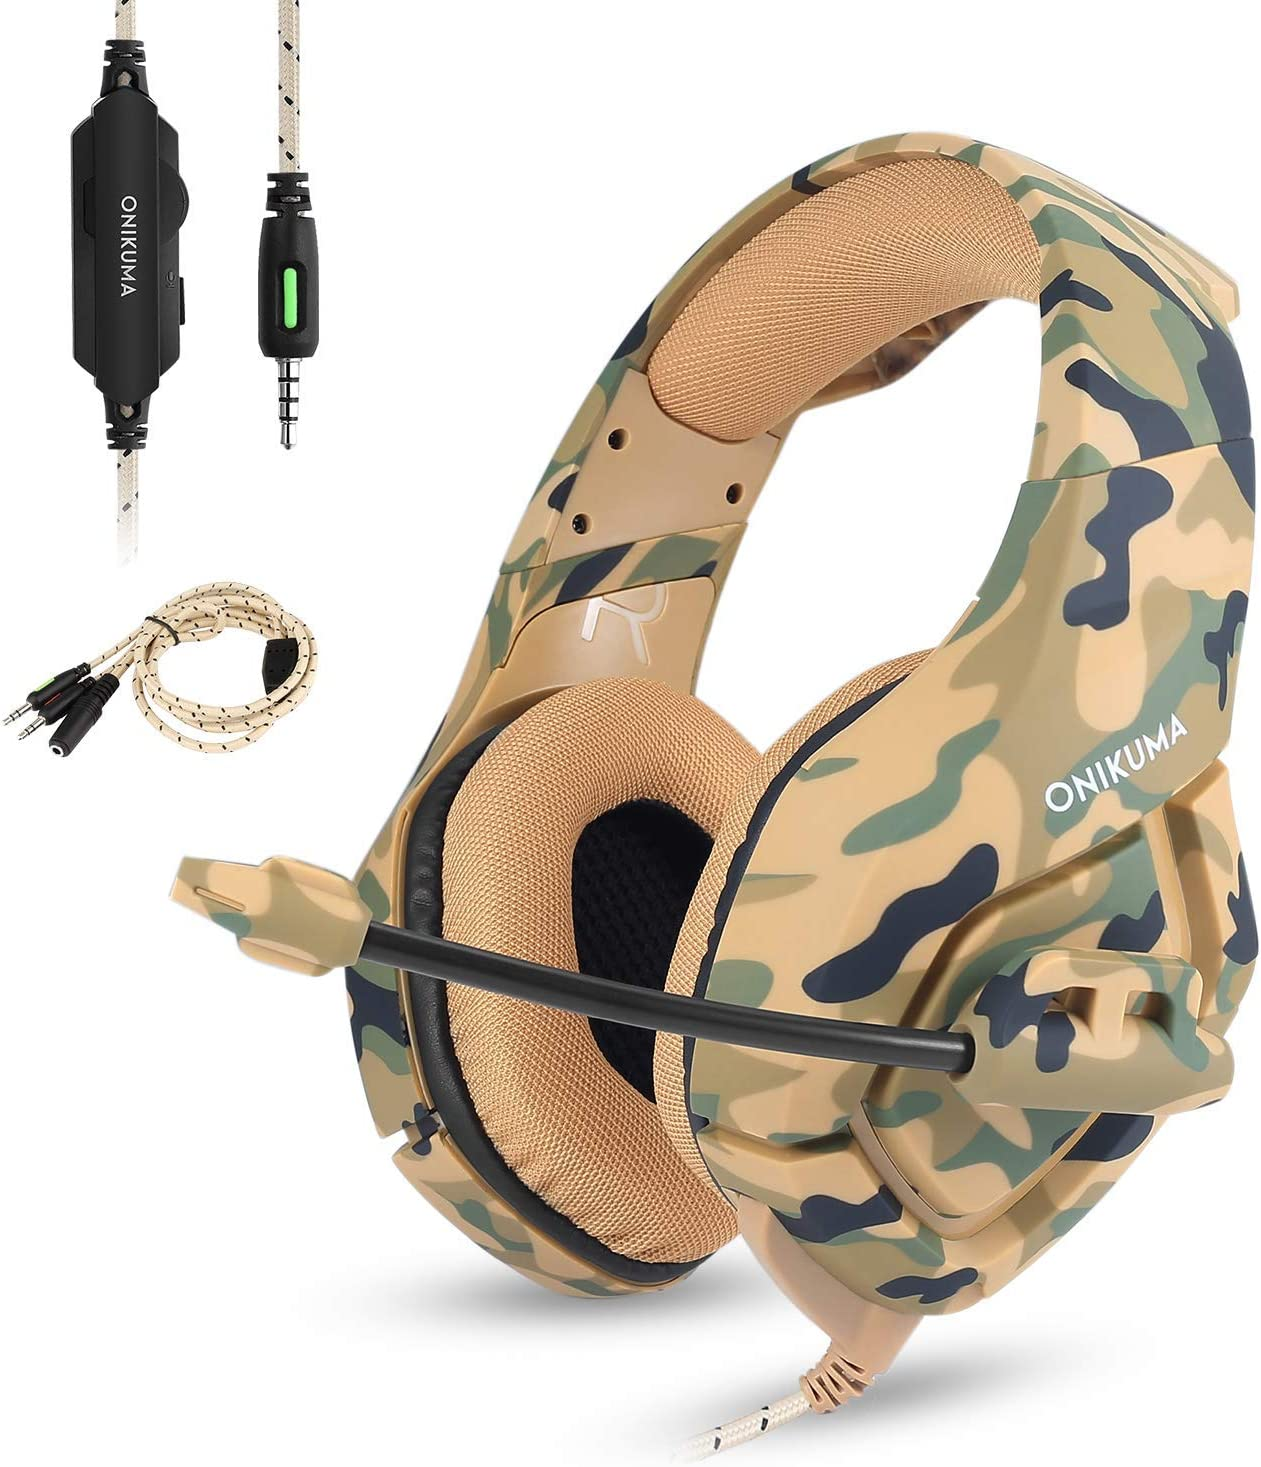 Stereo Gaming Headset Work for PC PS4 Xbox One Controller,Camo Over Ear Headphones with Noise Canceling Microphone,Soft Memory Earmuffs for Laptop Mac-Camouflage